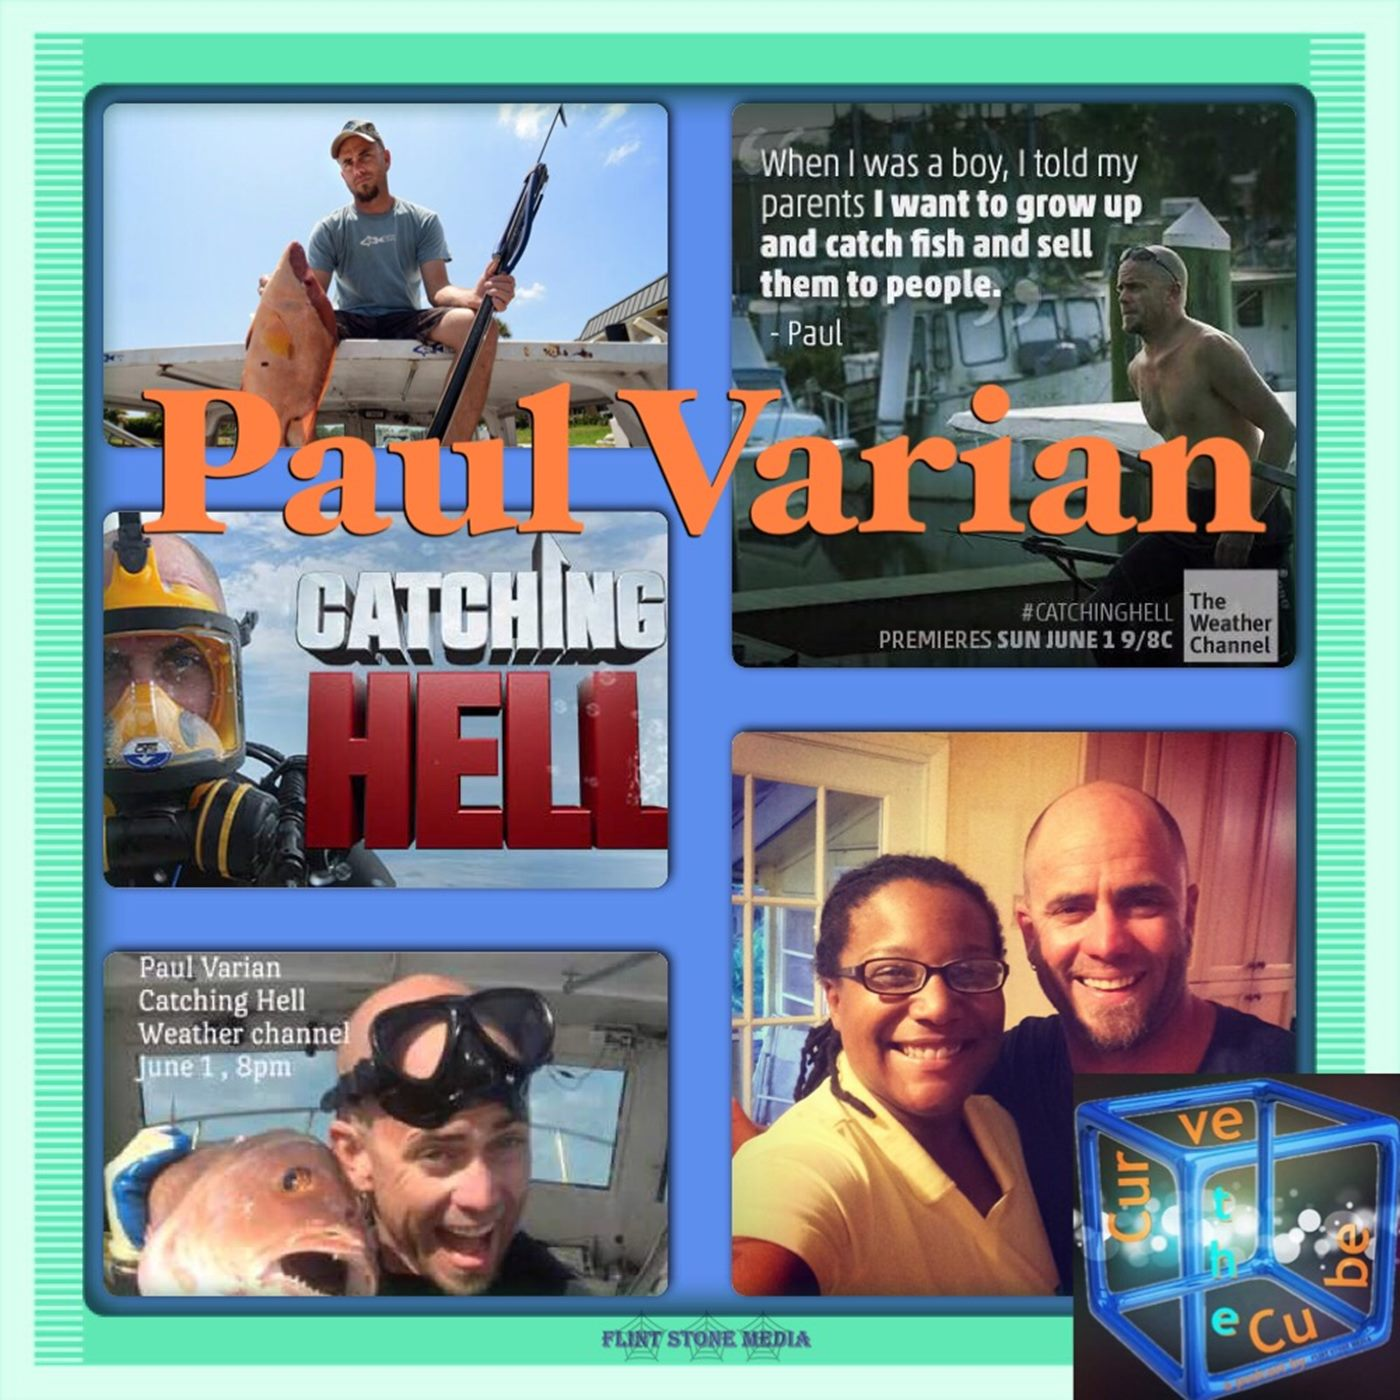 #26 – FISHERMAN – Paul Varian - 2015-04-24